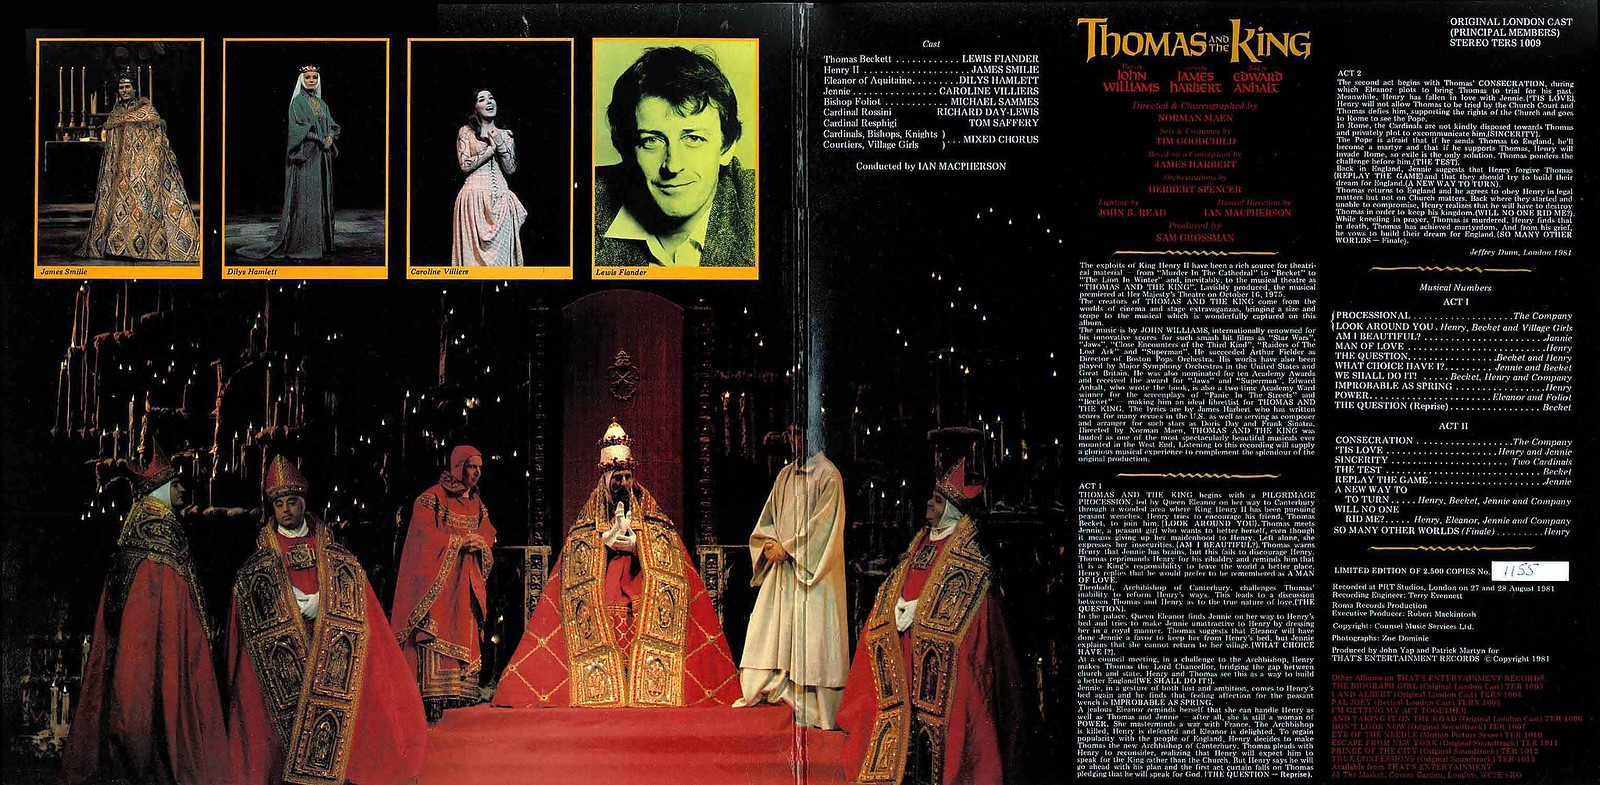 John Williams - Thomas and The King